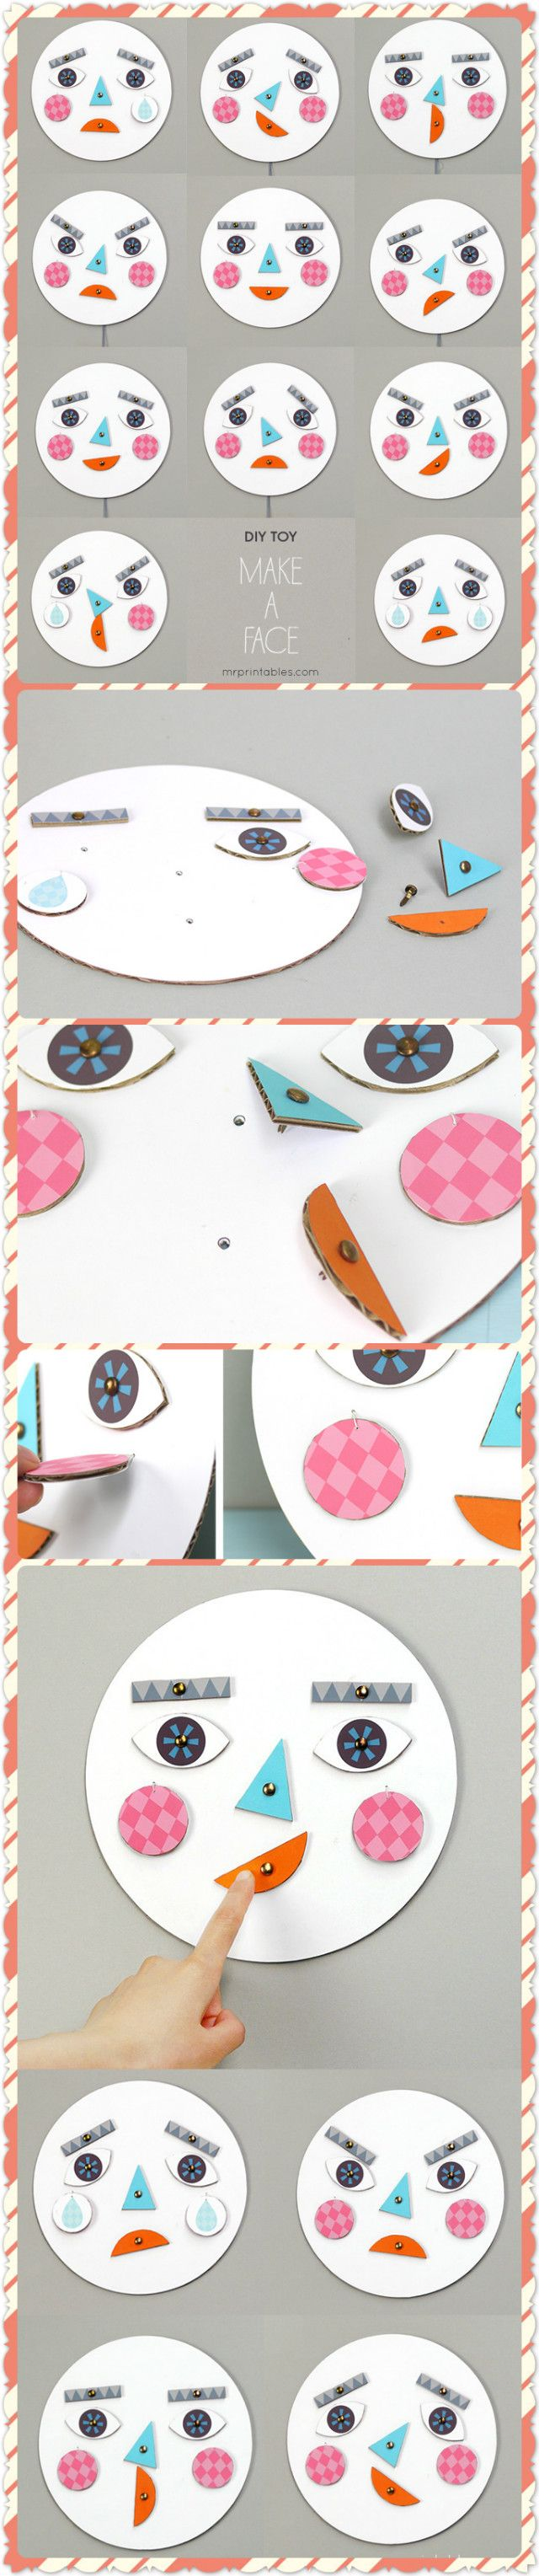 Make a face DIY Toy for teaching emotion identification